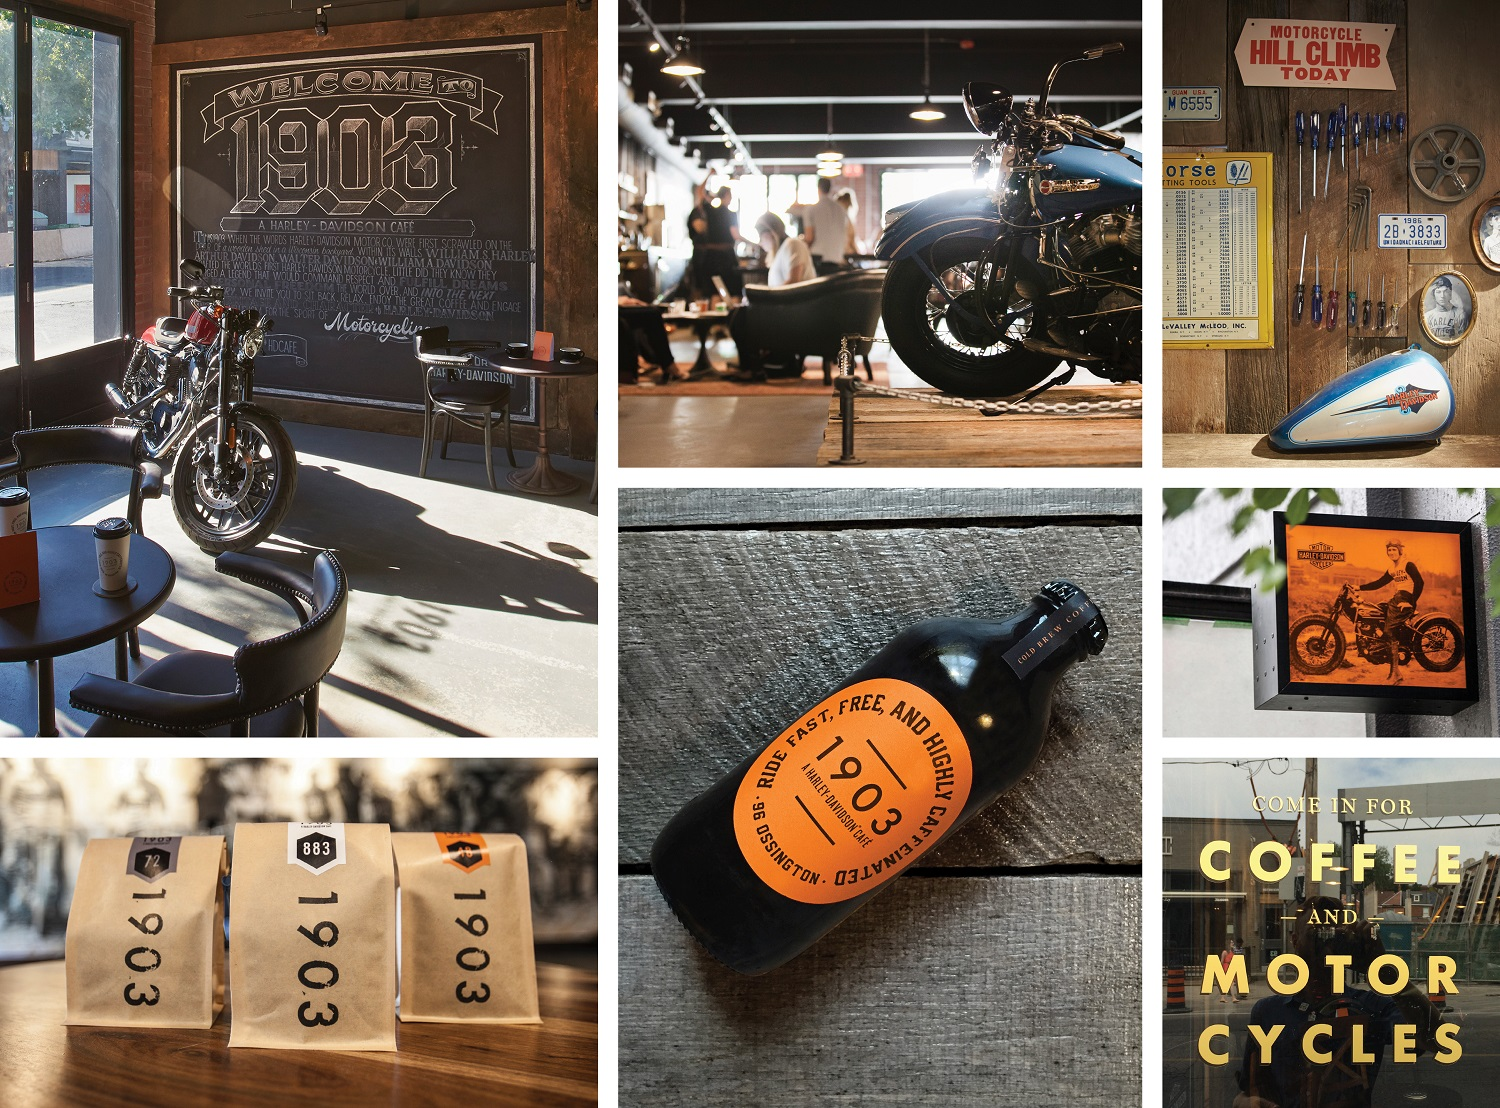 The Harley-Davidson Café showcased the agency's aesthetic and attention to detail across signage, packaging and interior design. Posters were even screen printed with a specially created coffee ink.